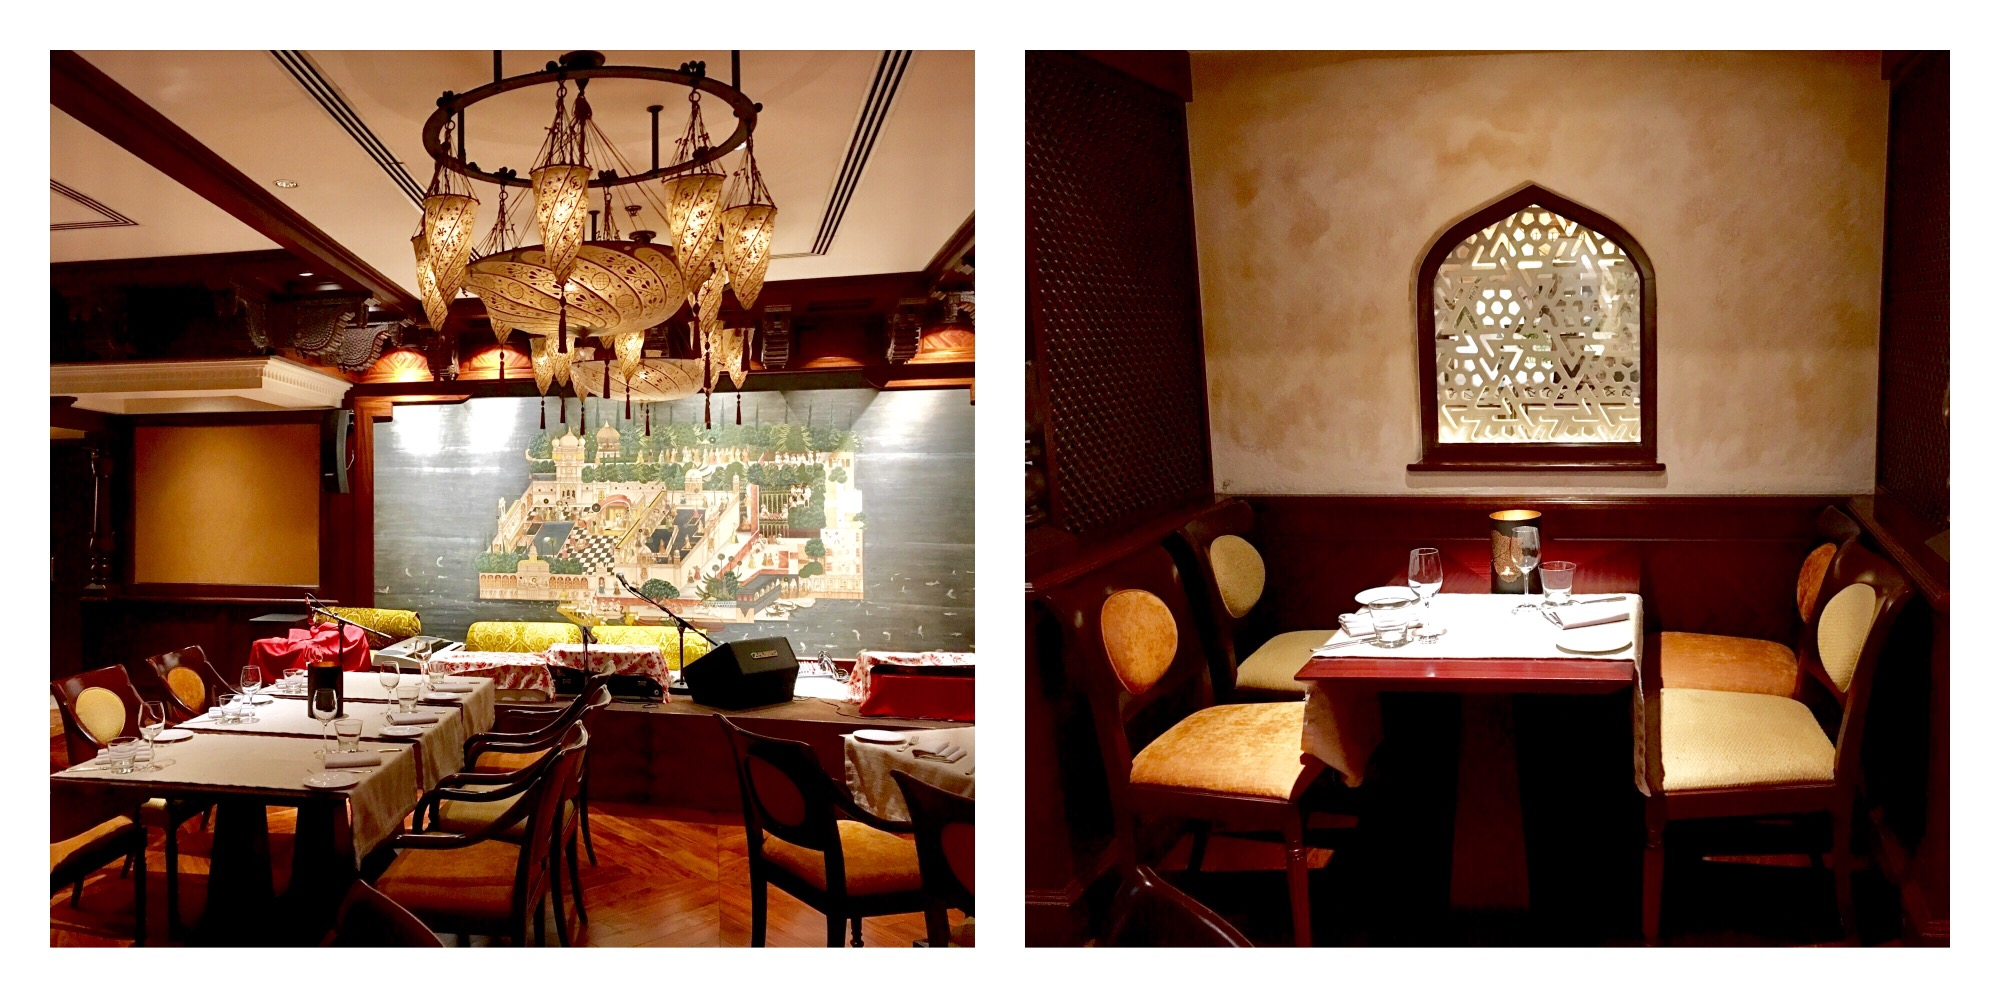 the decor of the restaurant is regal classy and elegant done up in the hues of dark wood and beige with exquisite chandeliers in the centre